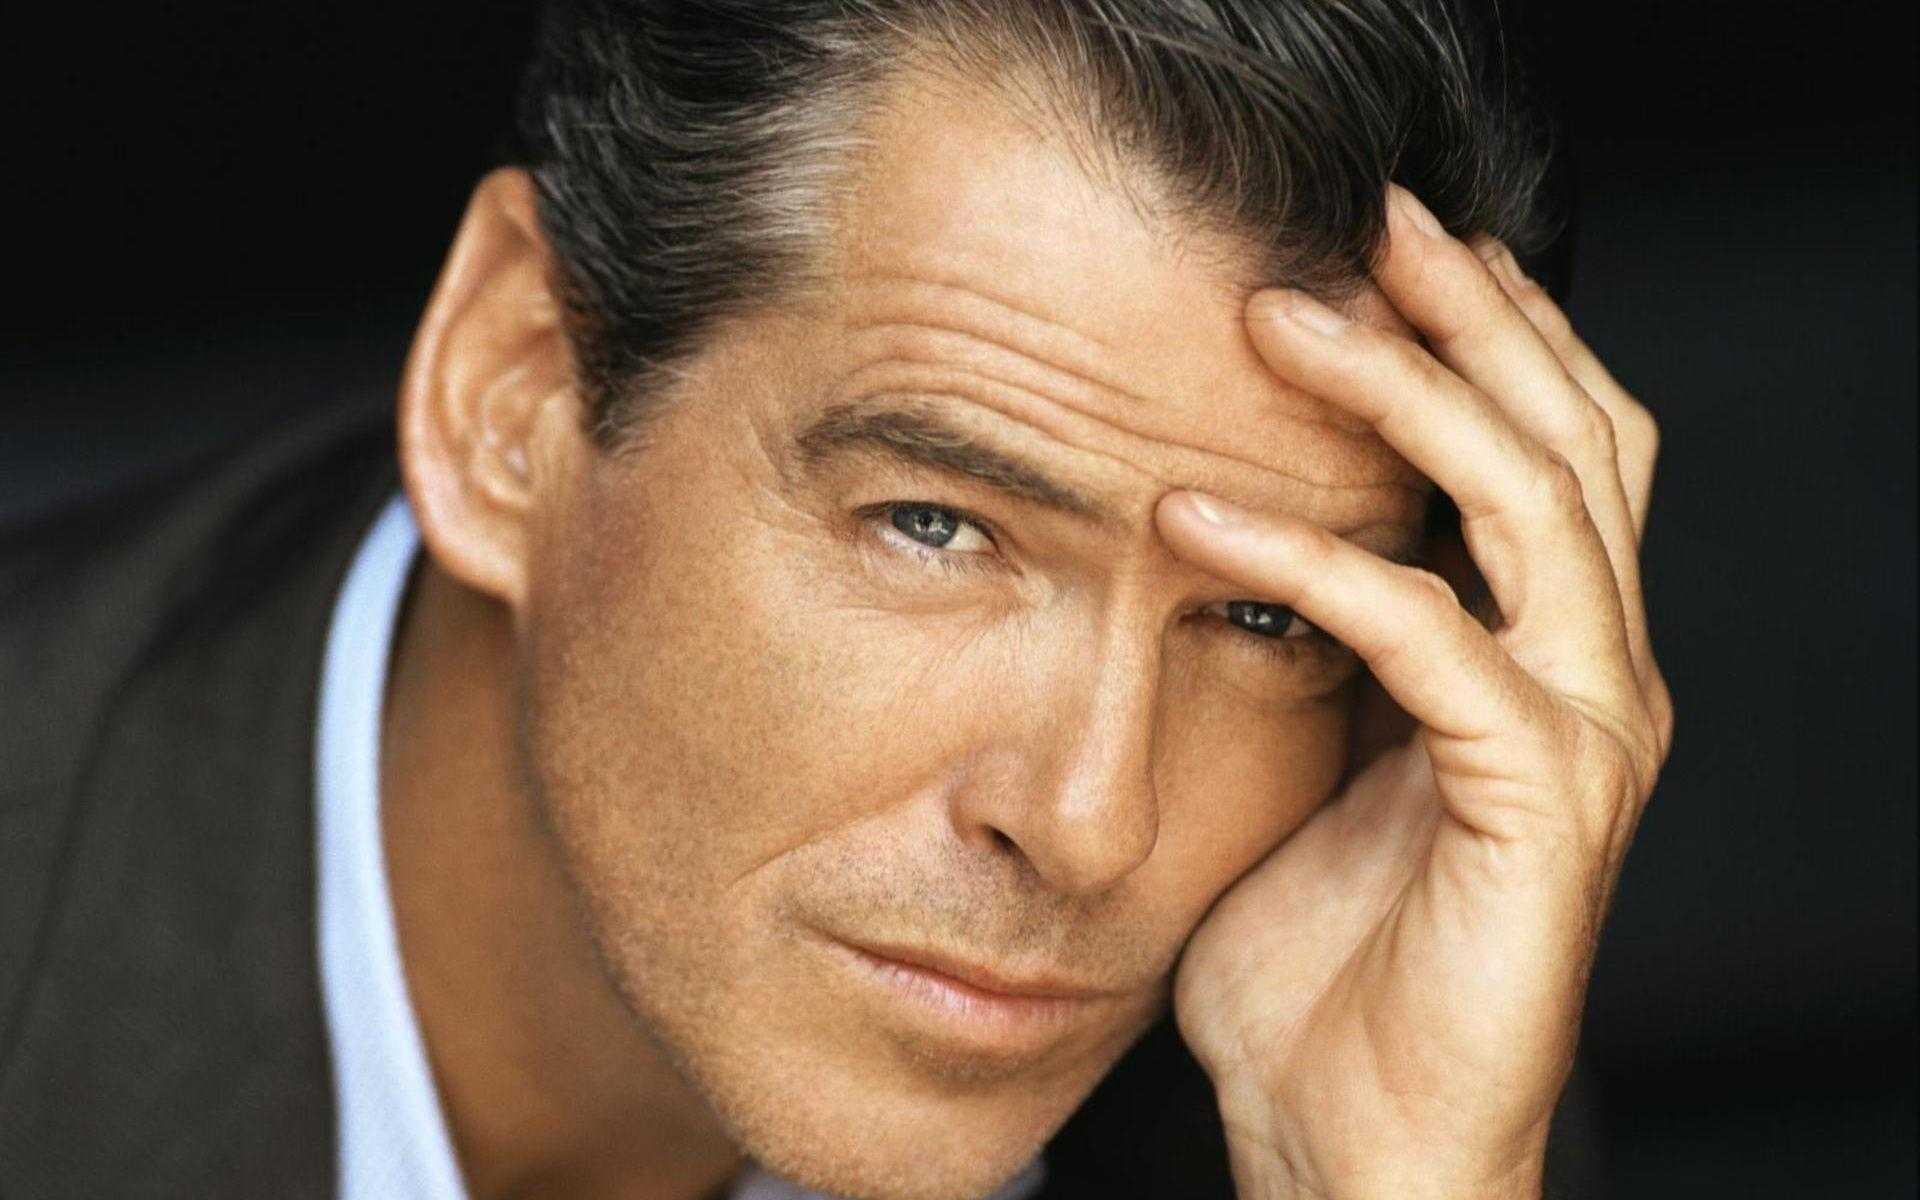 Pierce Brosnan Wallpapers, 44 Pierce Brosnan Images for Free (2MTX ...